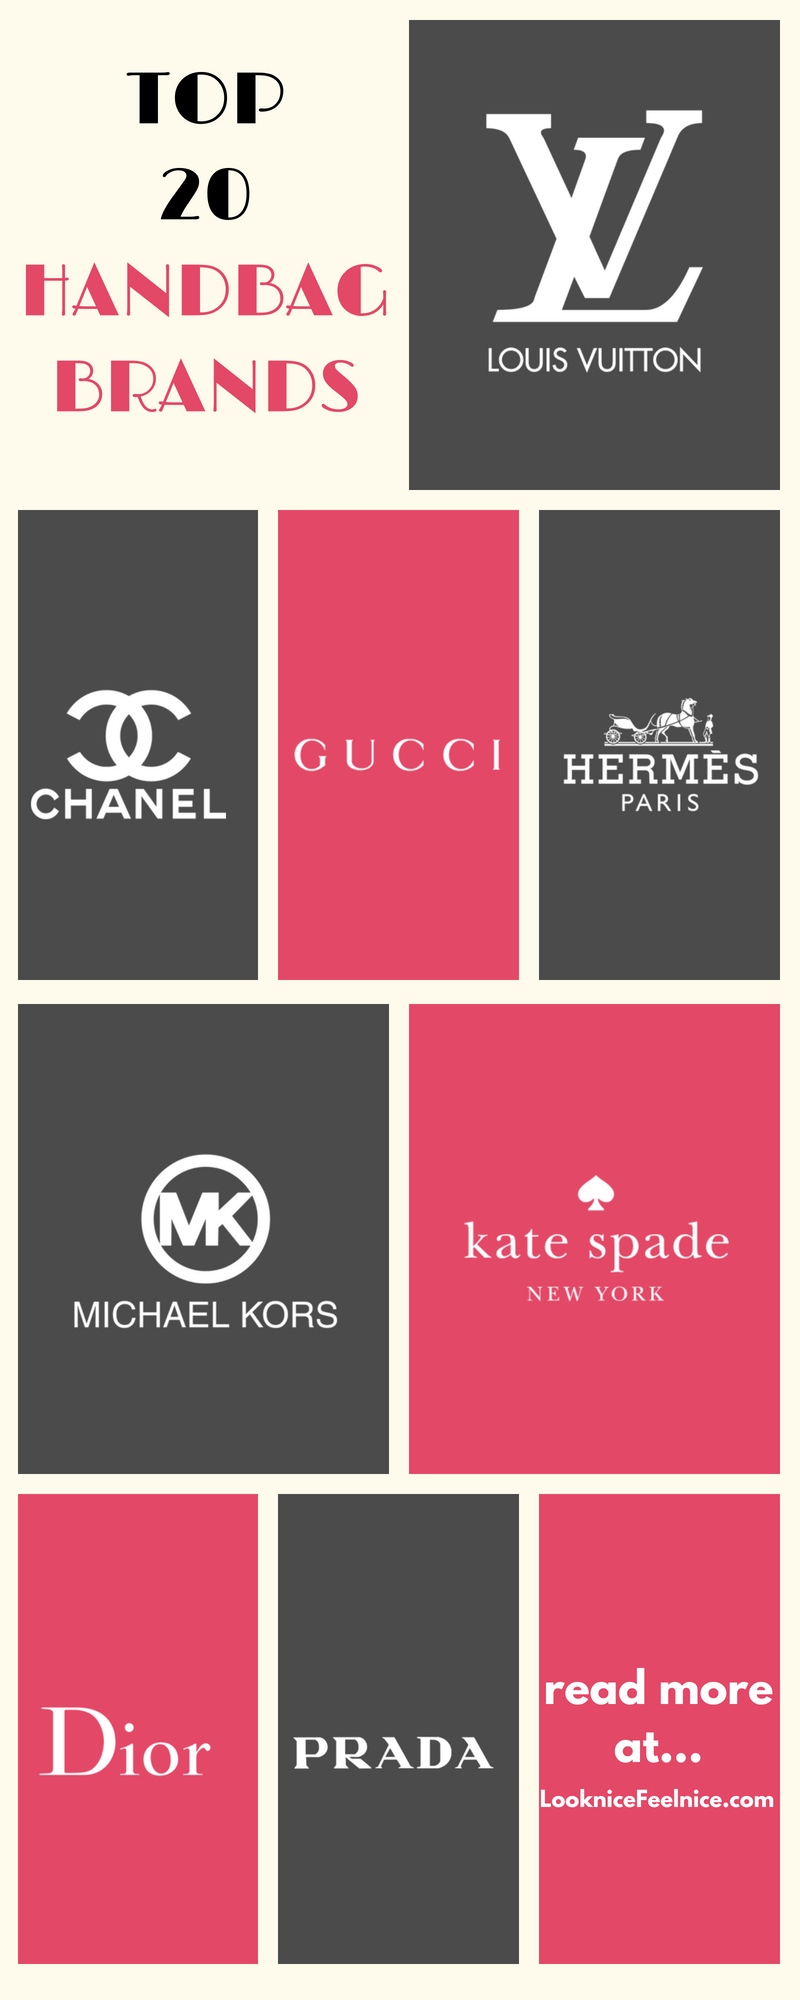 Top 20 Handbag Brands That Are Most